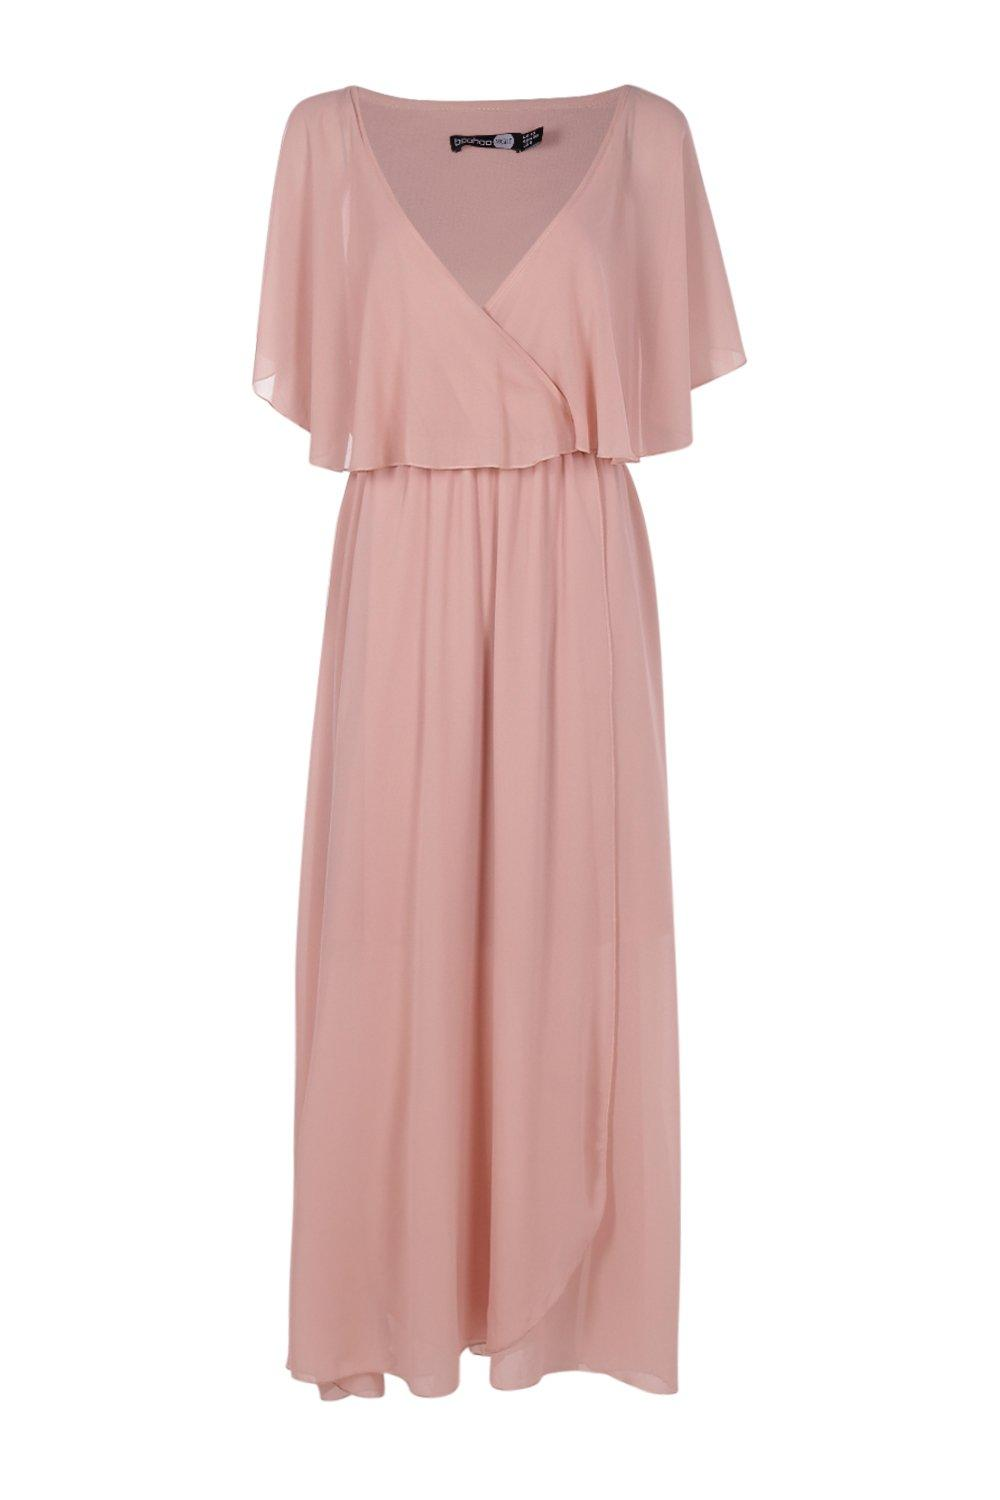 Elegant  About New Womens Plus Size Fully Lined Long Chiffon Maxi Dress 1626